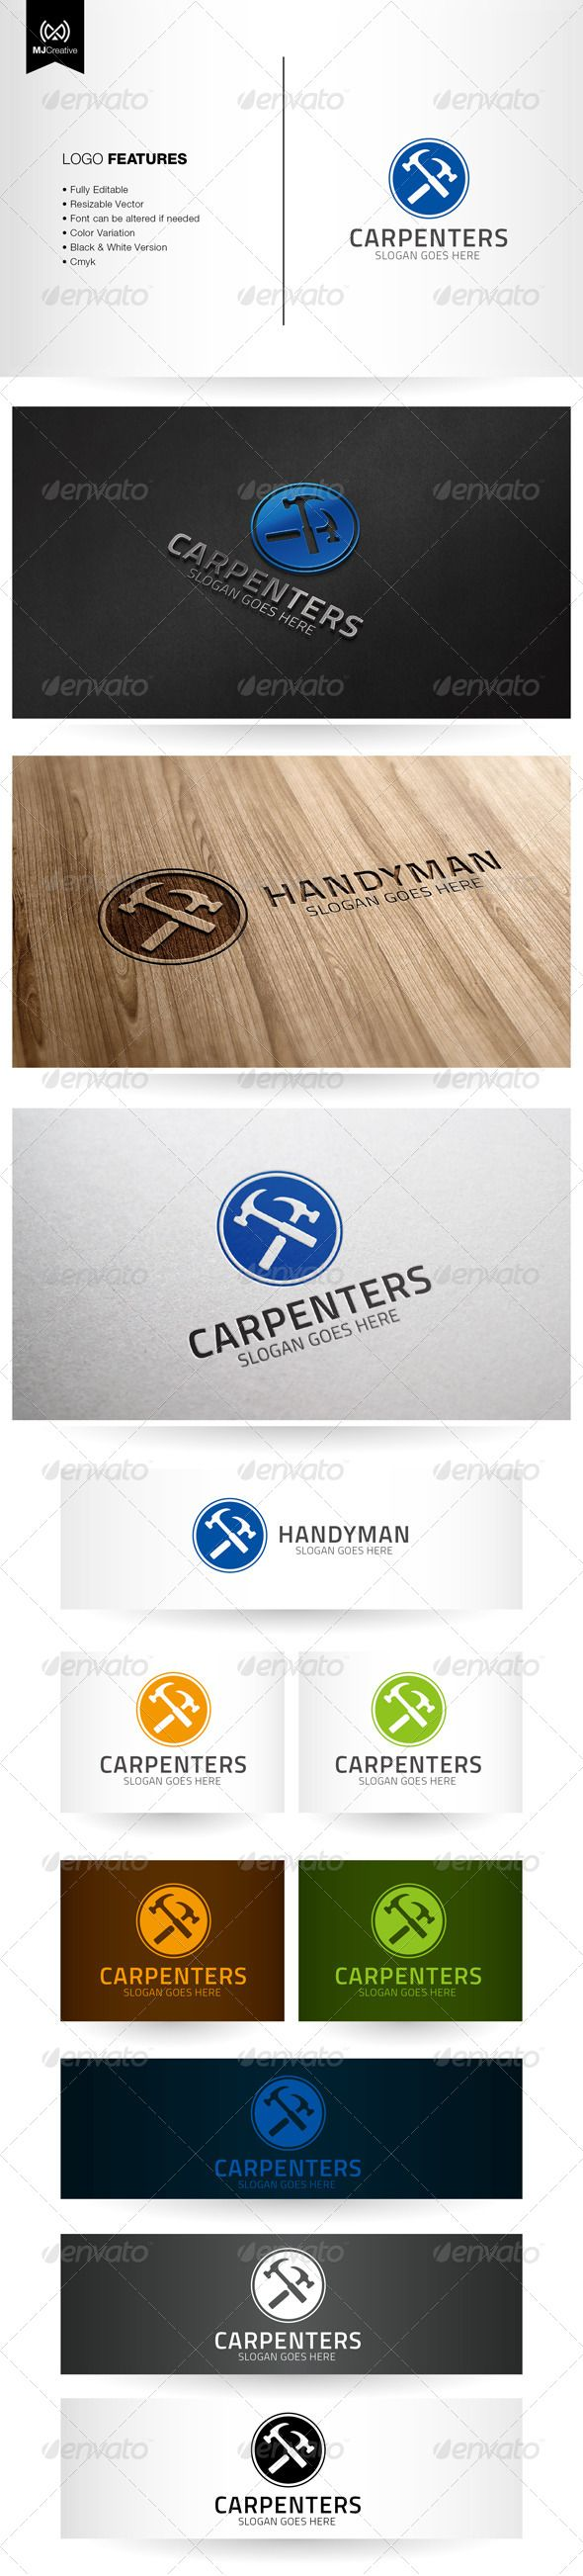 Handyman and Carpentry Logo  #GraphicRiver         Logo template suitable for Carpentry, Constructions, Handyman, etc…   The logo is vector format so you can re-sized without losing the quality.   Included in the download    Ai File (cs3 or later)  EPS10  Info Text  Free fonts used in the design  For any modification and editing assistance, please contact me and I'll be happy to help.      Created: 16September13 GraphicsFilesIncluded: JPGImage #VectorEPS #AIIllustrator Layered